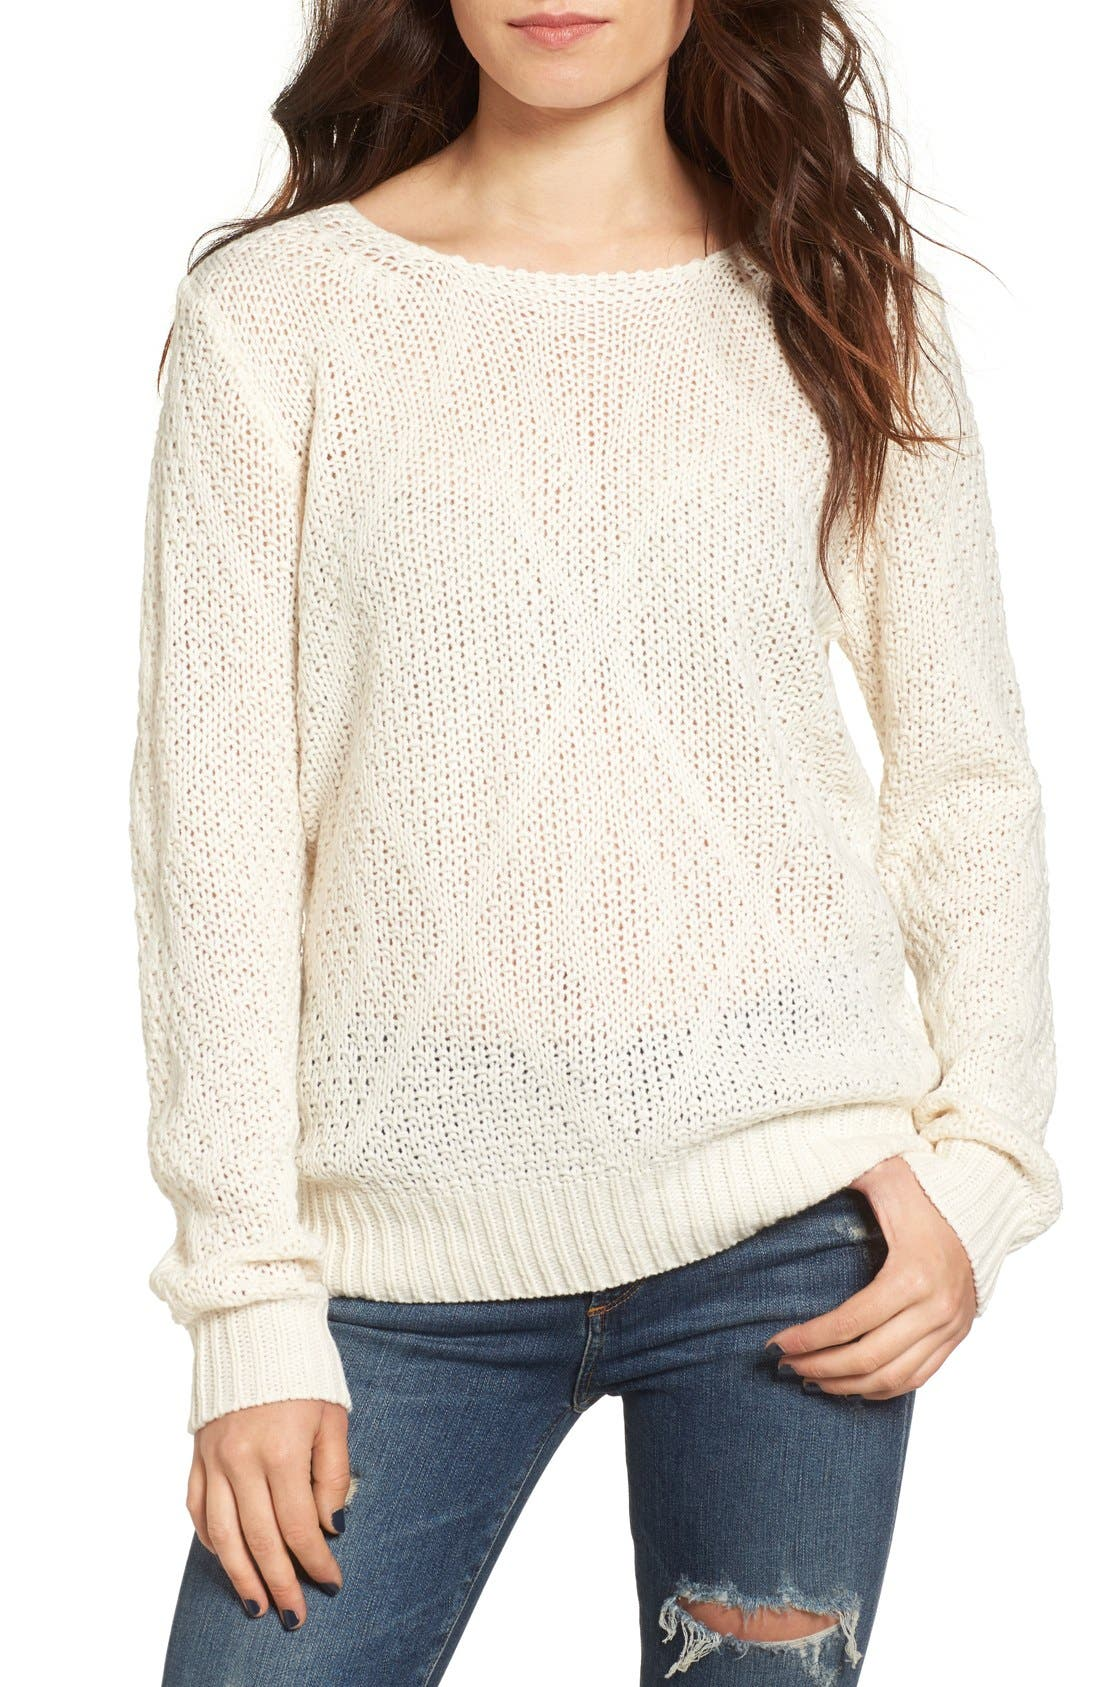 Alternate Image 1 Selected - Woven Heart Lace-Up Knit Pullover